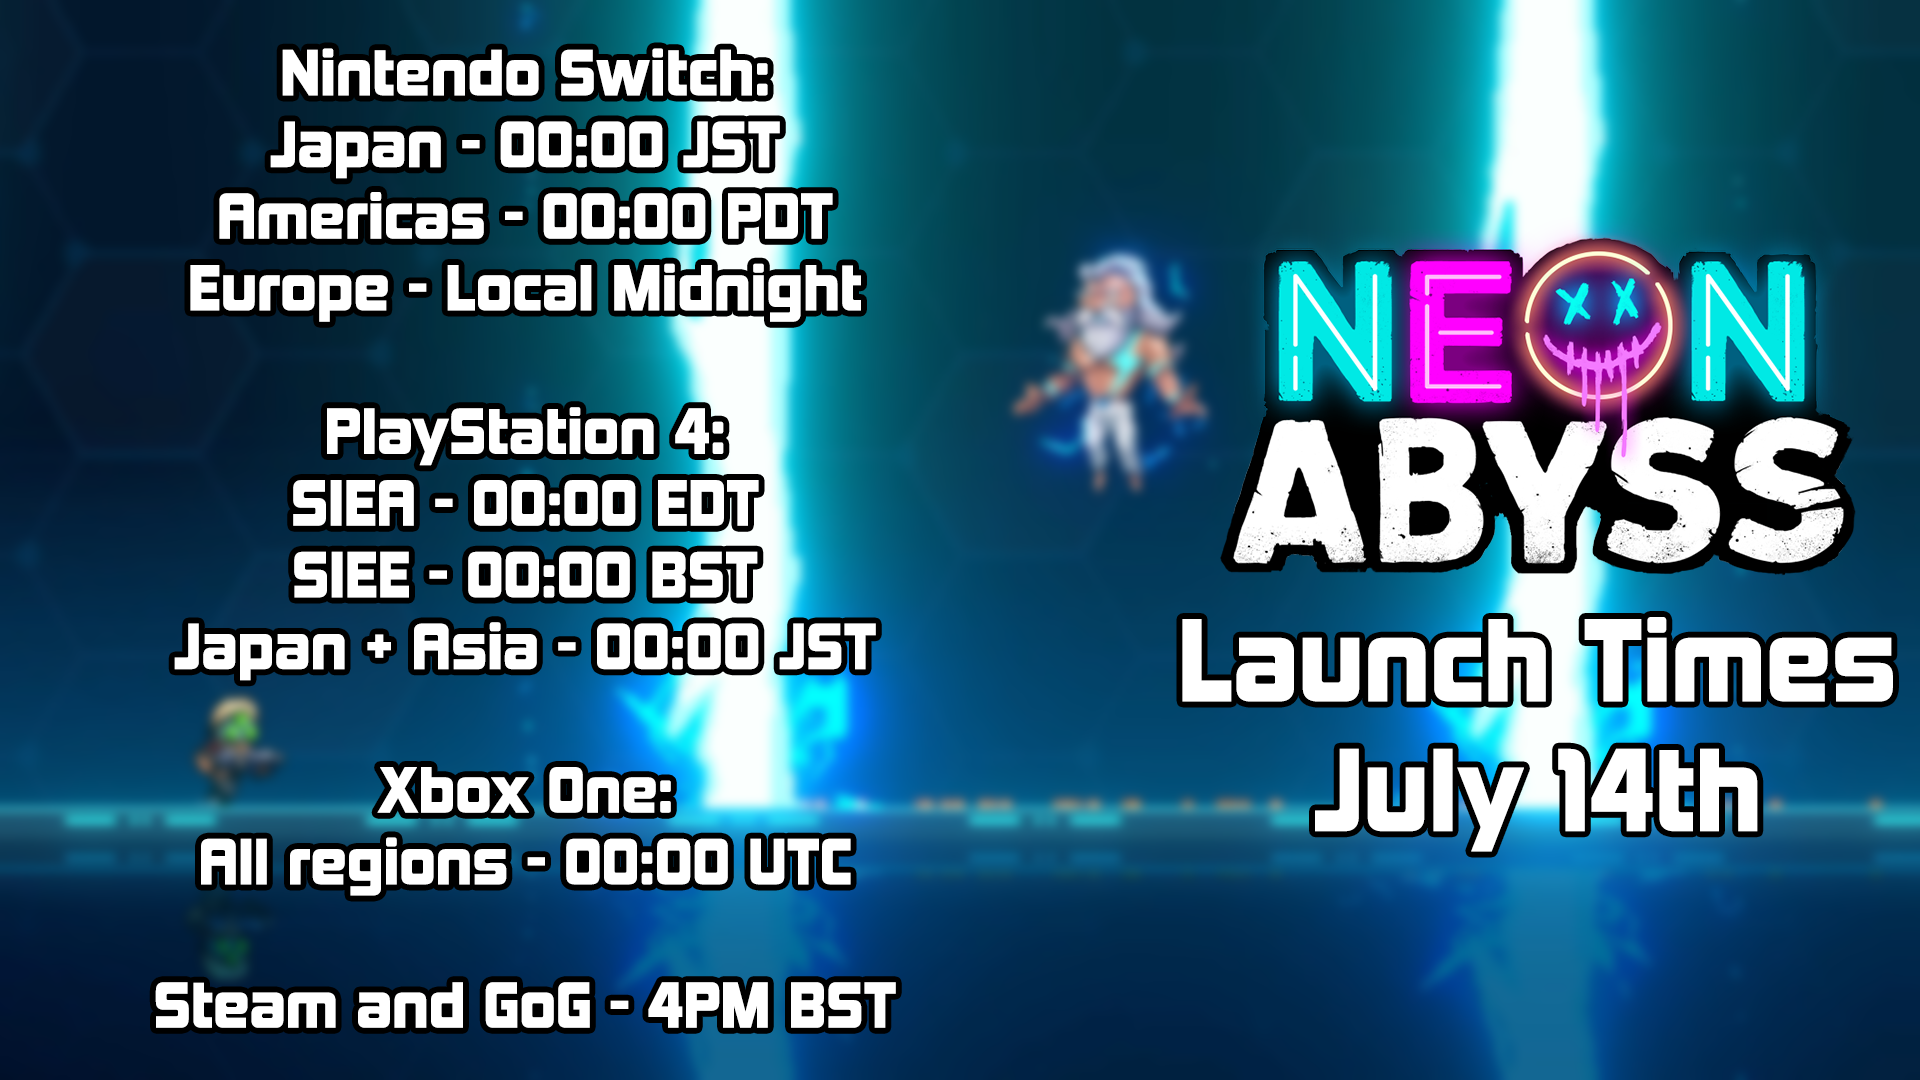 Neon Abyss On Twitter Abyssonauts It S Almost Time To Run N Gun In Neon Abyss Here S The List Of Release Times For Each Platform And Region For July 14th We Can T Wait For You